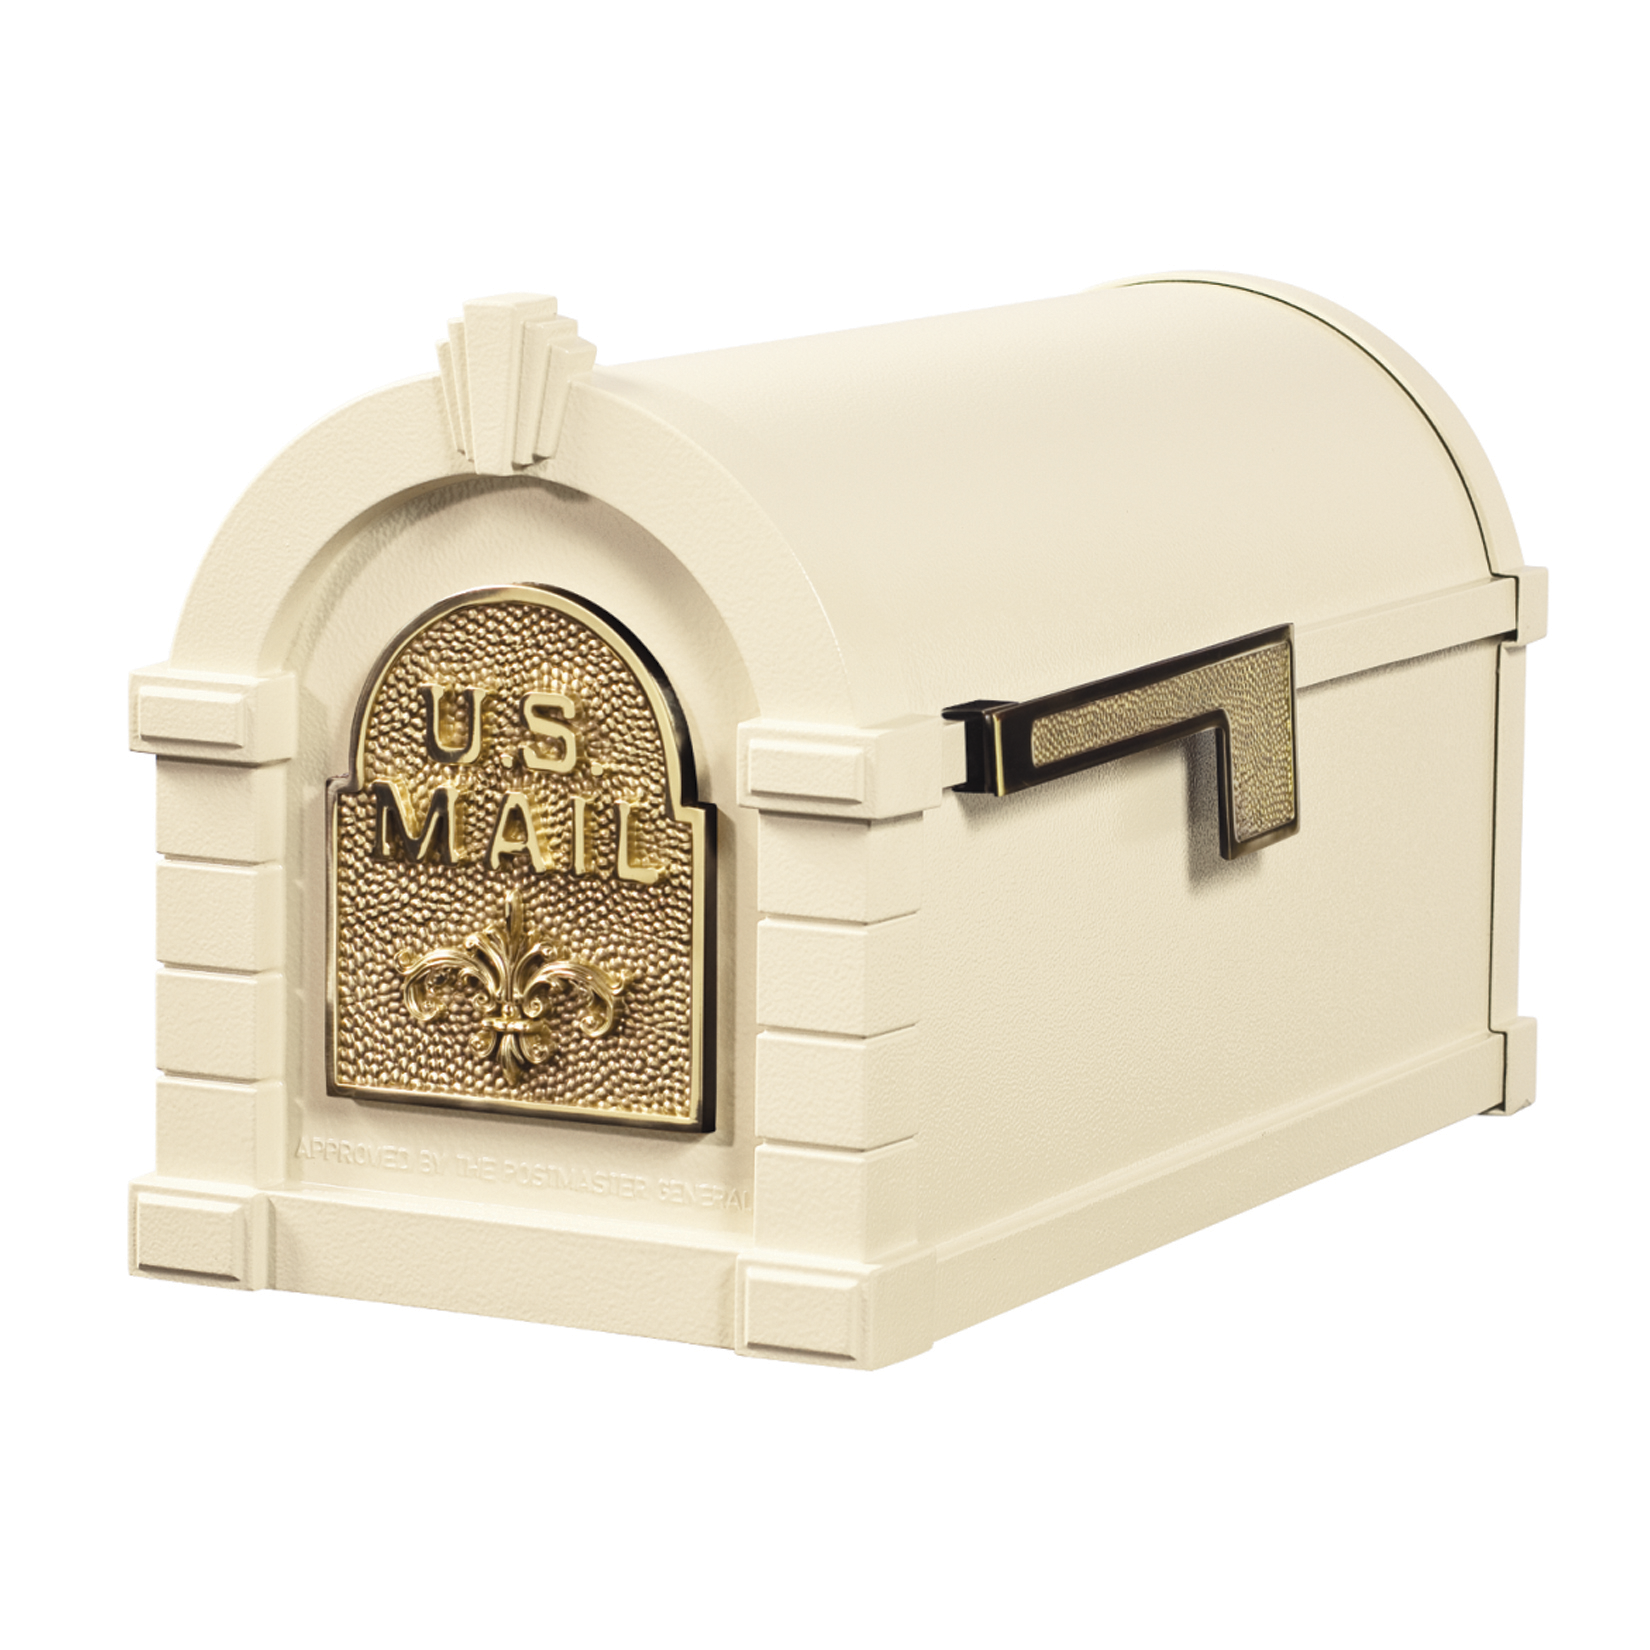 Gaines Fleur De Lis Keystone Mailboxes - Almond with Polished Brass